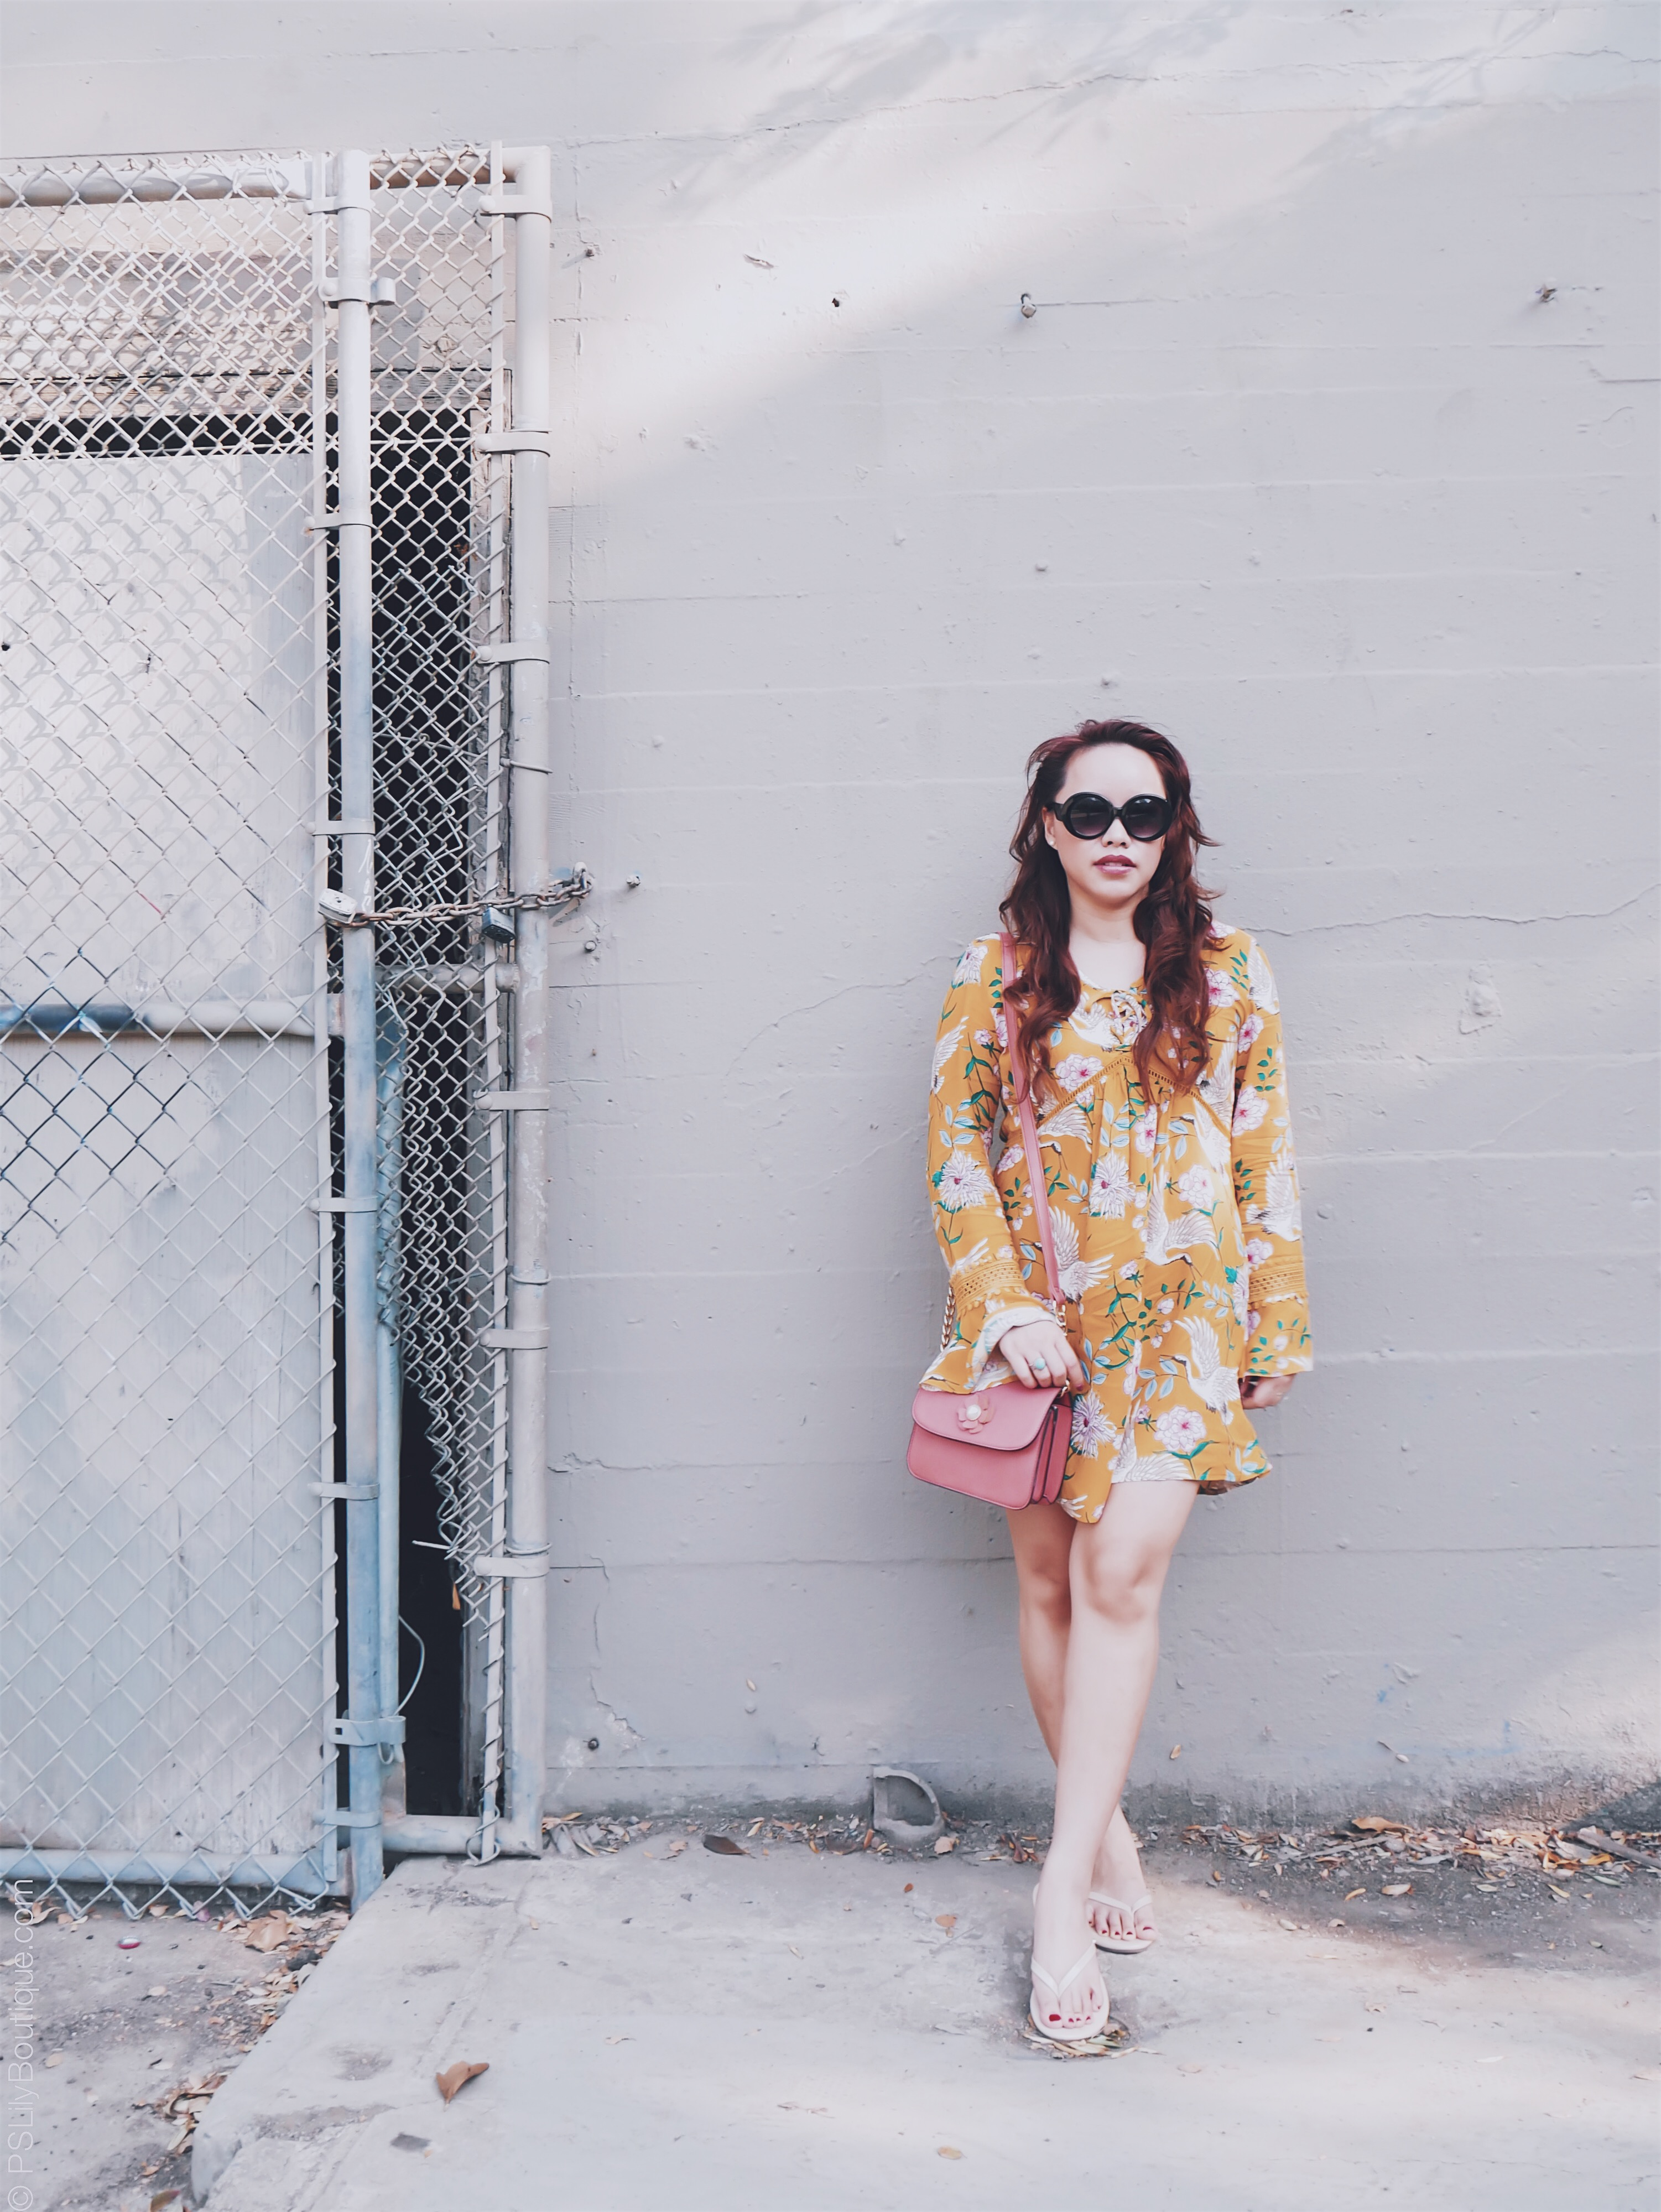 Like a bird... | PSLily Boutique - A Fashion & Personal Style Blog. Instagram: @pslilyboutique, Pinterest, Los Angeles fashion blogger, top fashion blog, best fashion blog, fashion & personal style blog, travel blog, travel blogger, LA fashion blogger, Sam Edelman Nude Beige Slip- Ons Sandals Shoes, Spring & Summer 2018 Outfit ideas, yellow dress, floral & bird print dress, Andrew Marc Salmon Pink Flower Detail Mini Bag, Long Hair, Beauty, My Style, 7.20.18